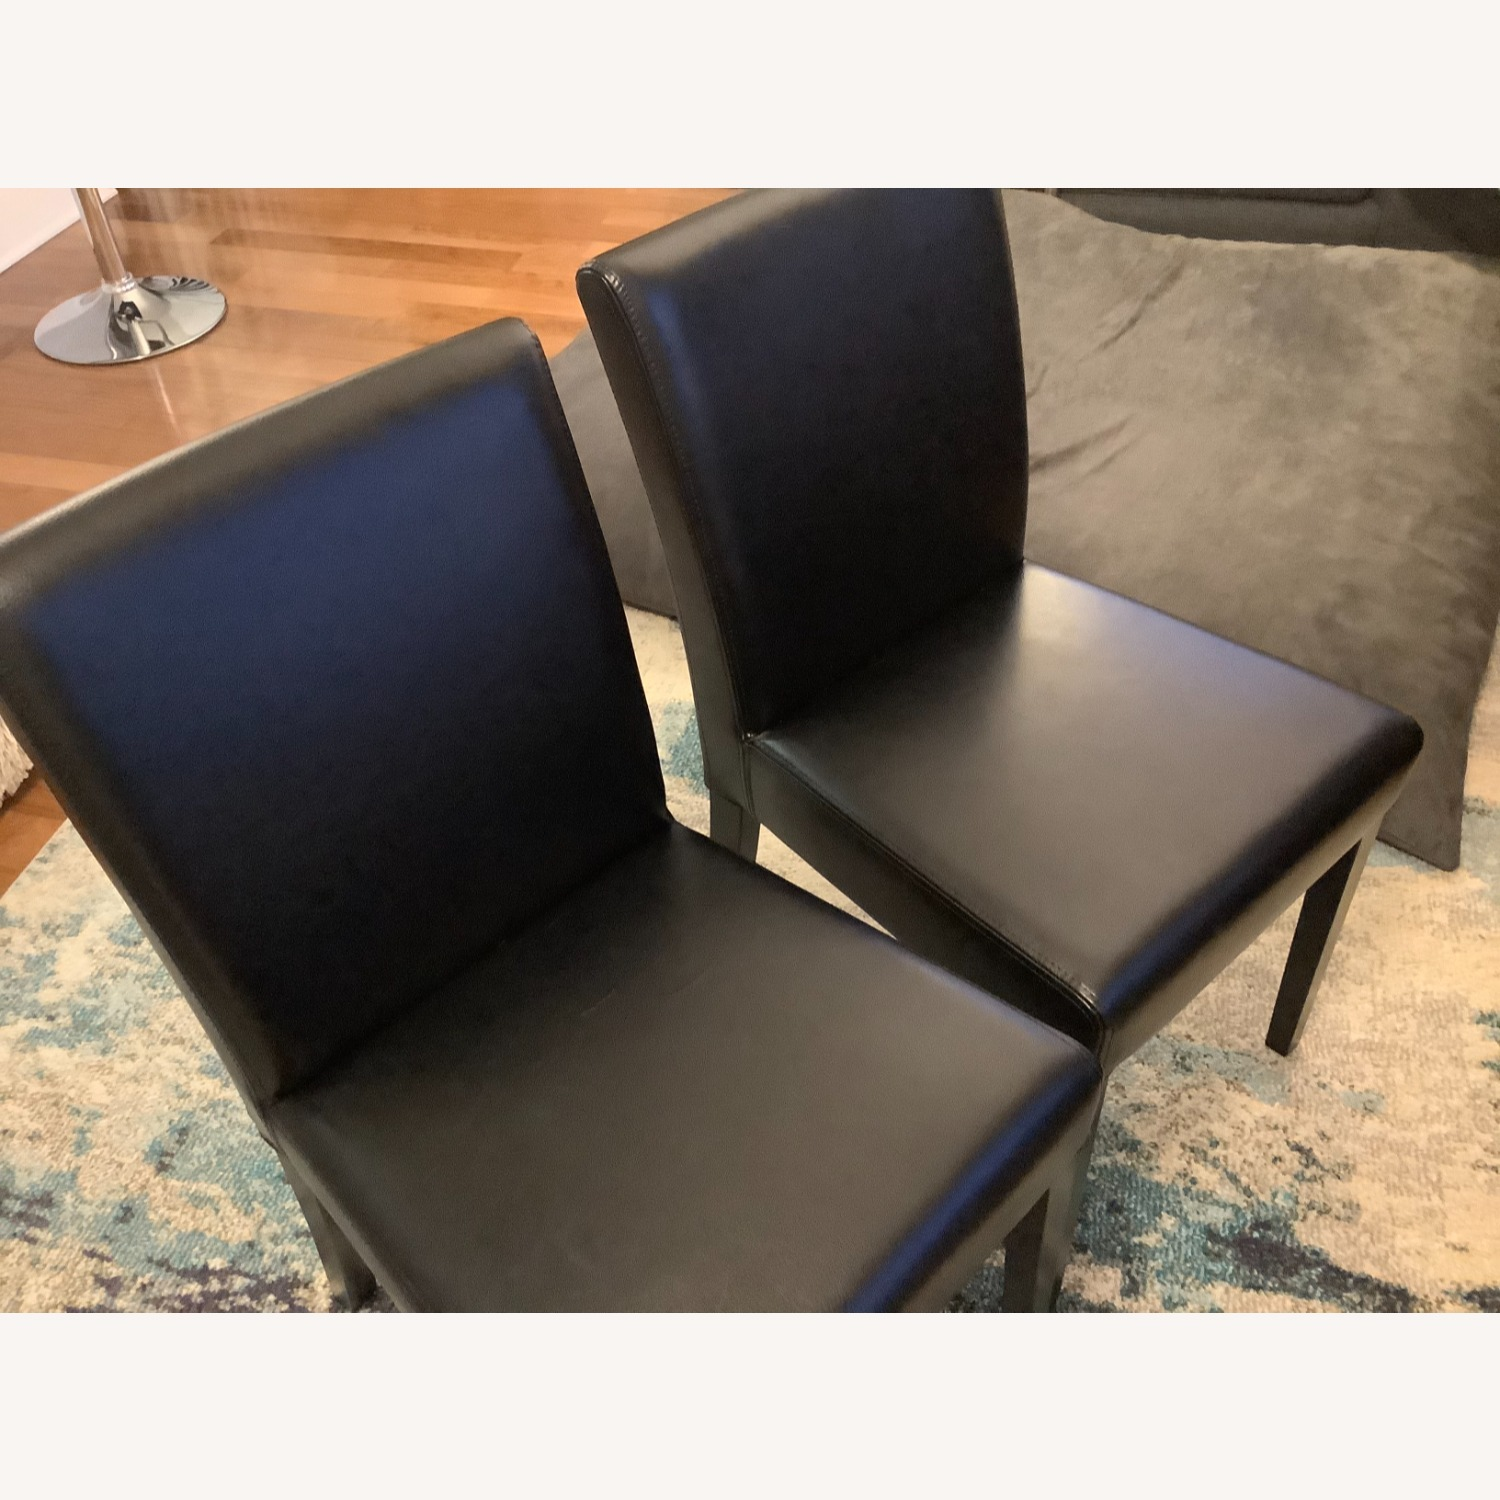 Crate & Barrel Lowe Leather Dining Chair - image-4